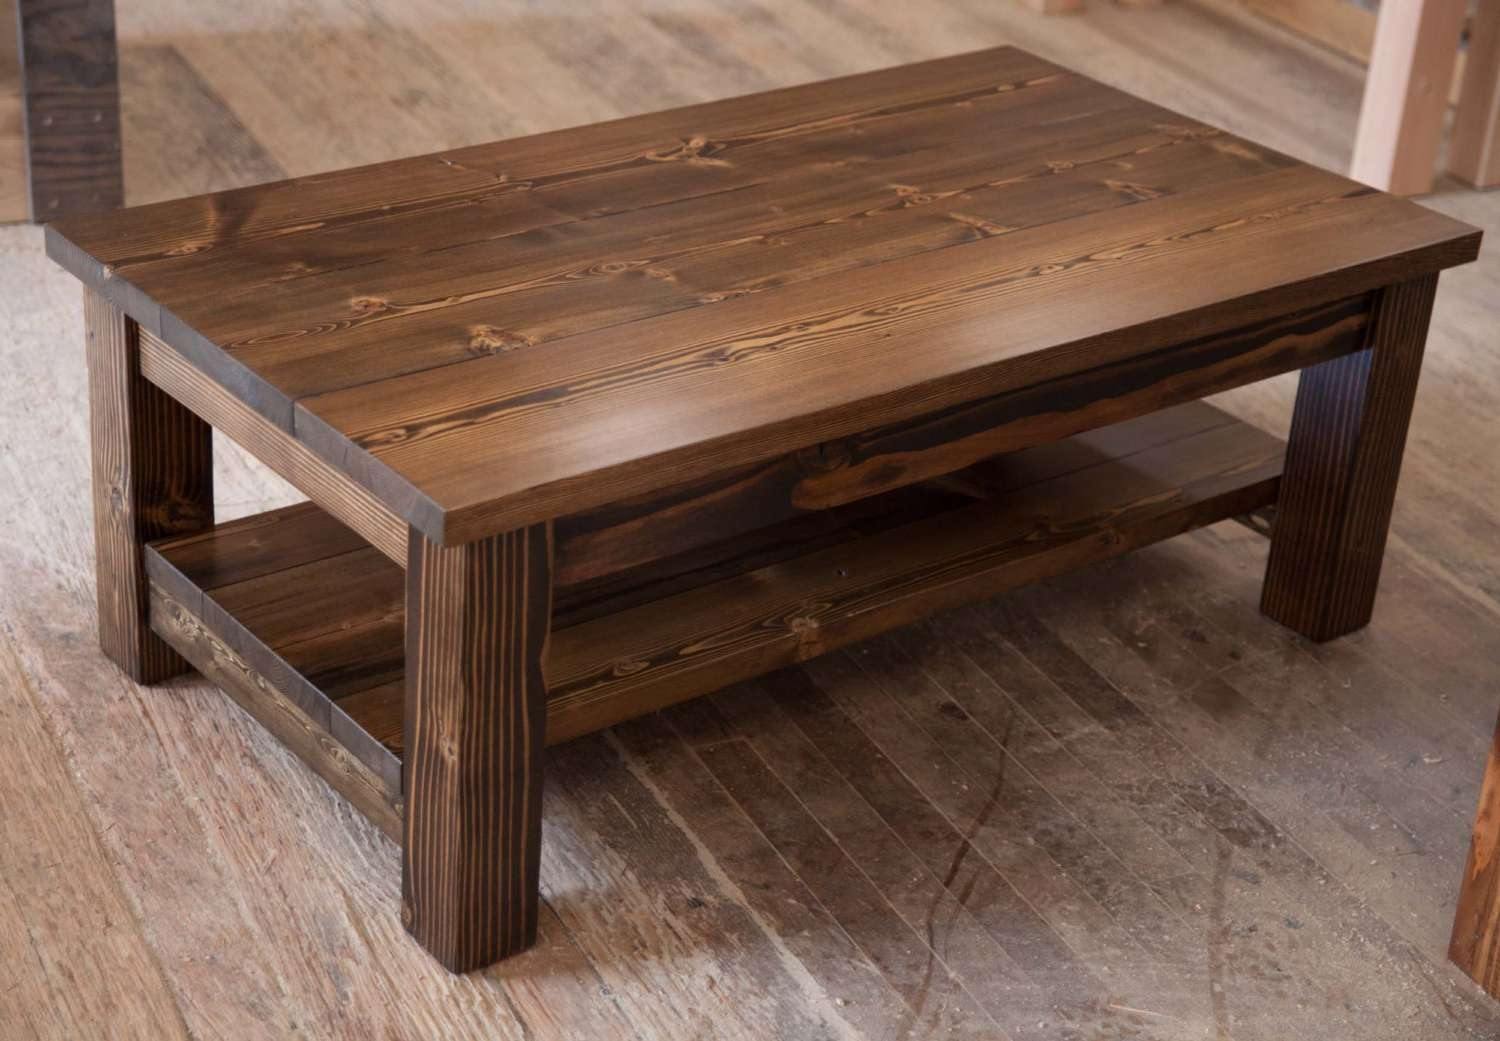 Popular Solid Oak Coffee Tables Intended For Ideas Rustic Wood Coffee Table : Choosing Rustic Wood Coffee Table (View 13 of 20)